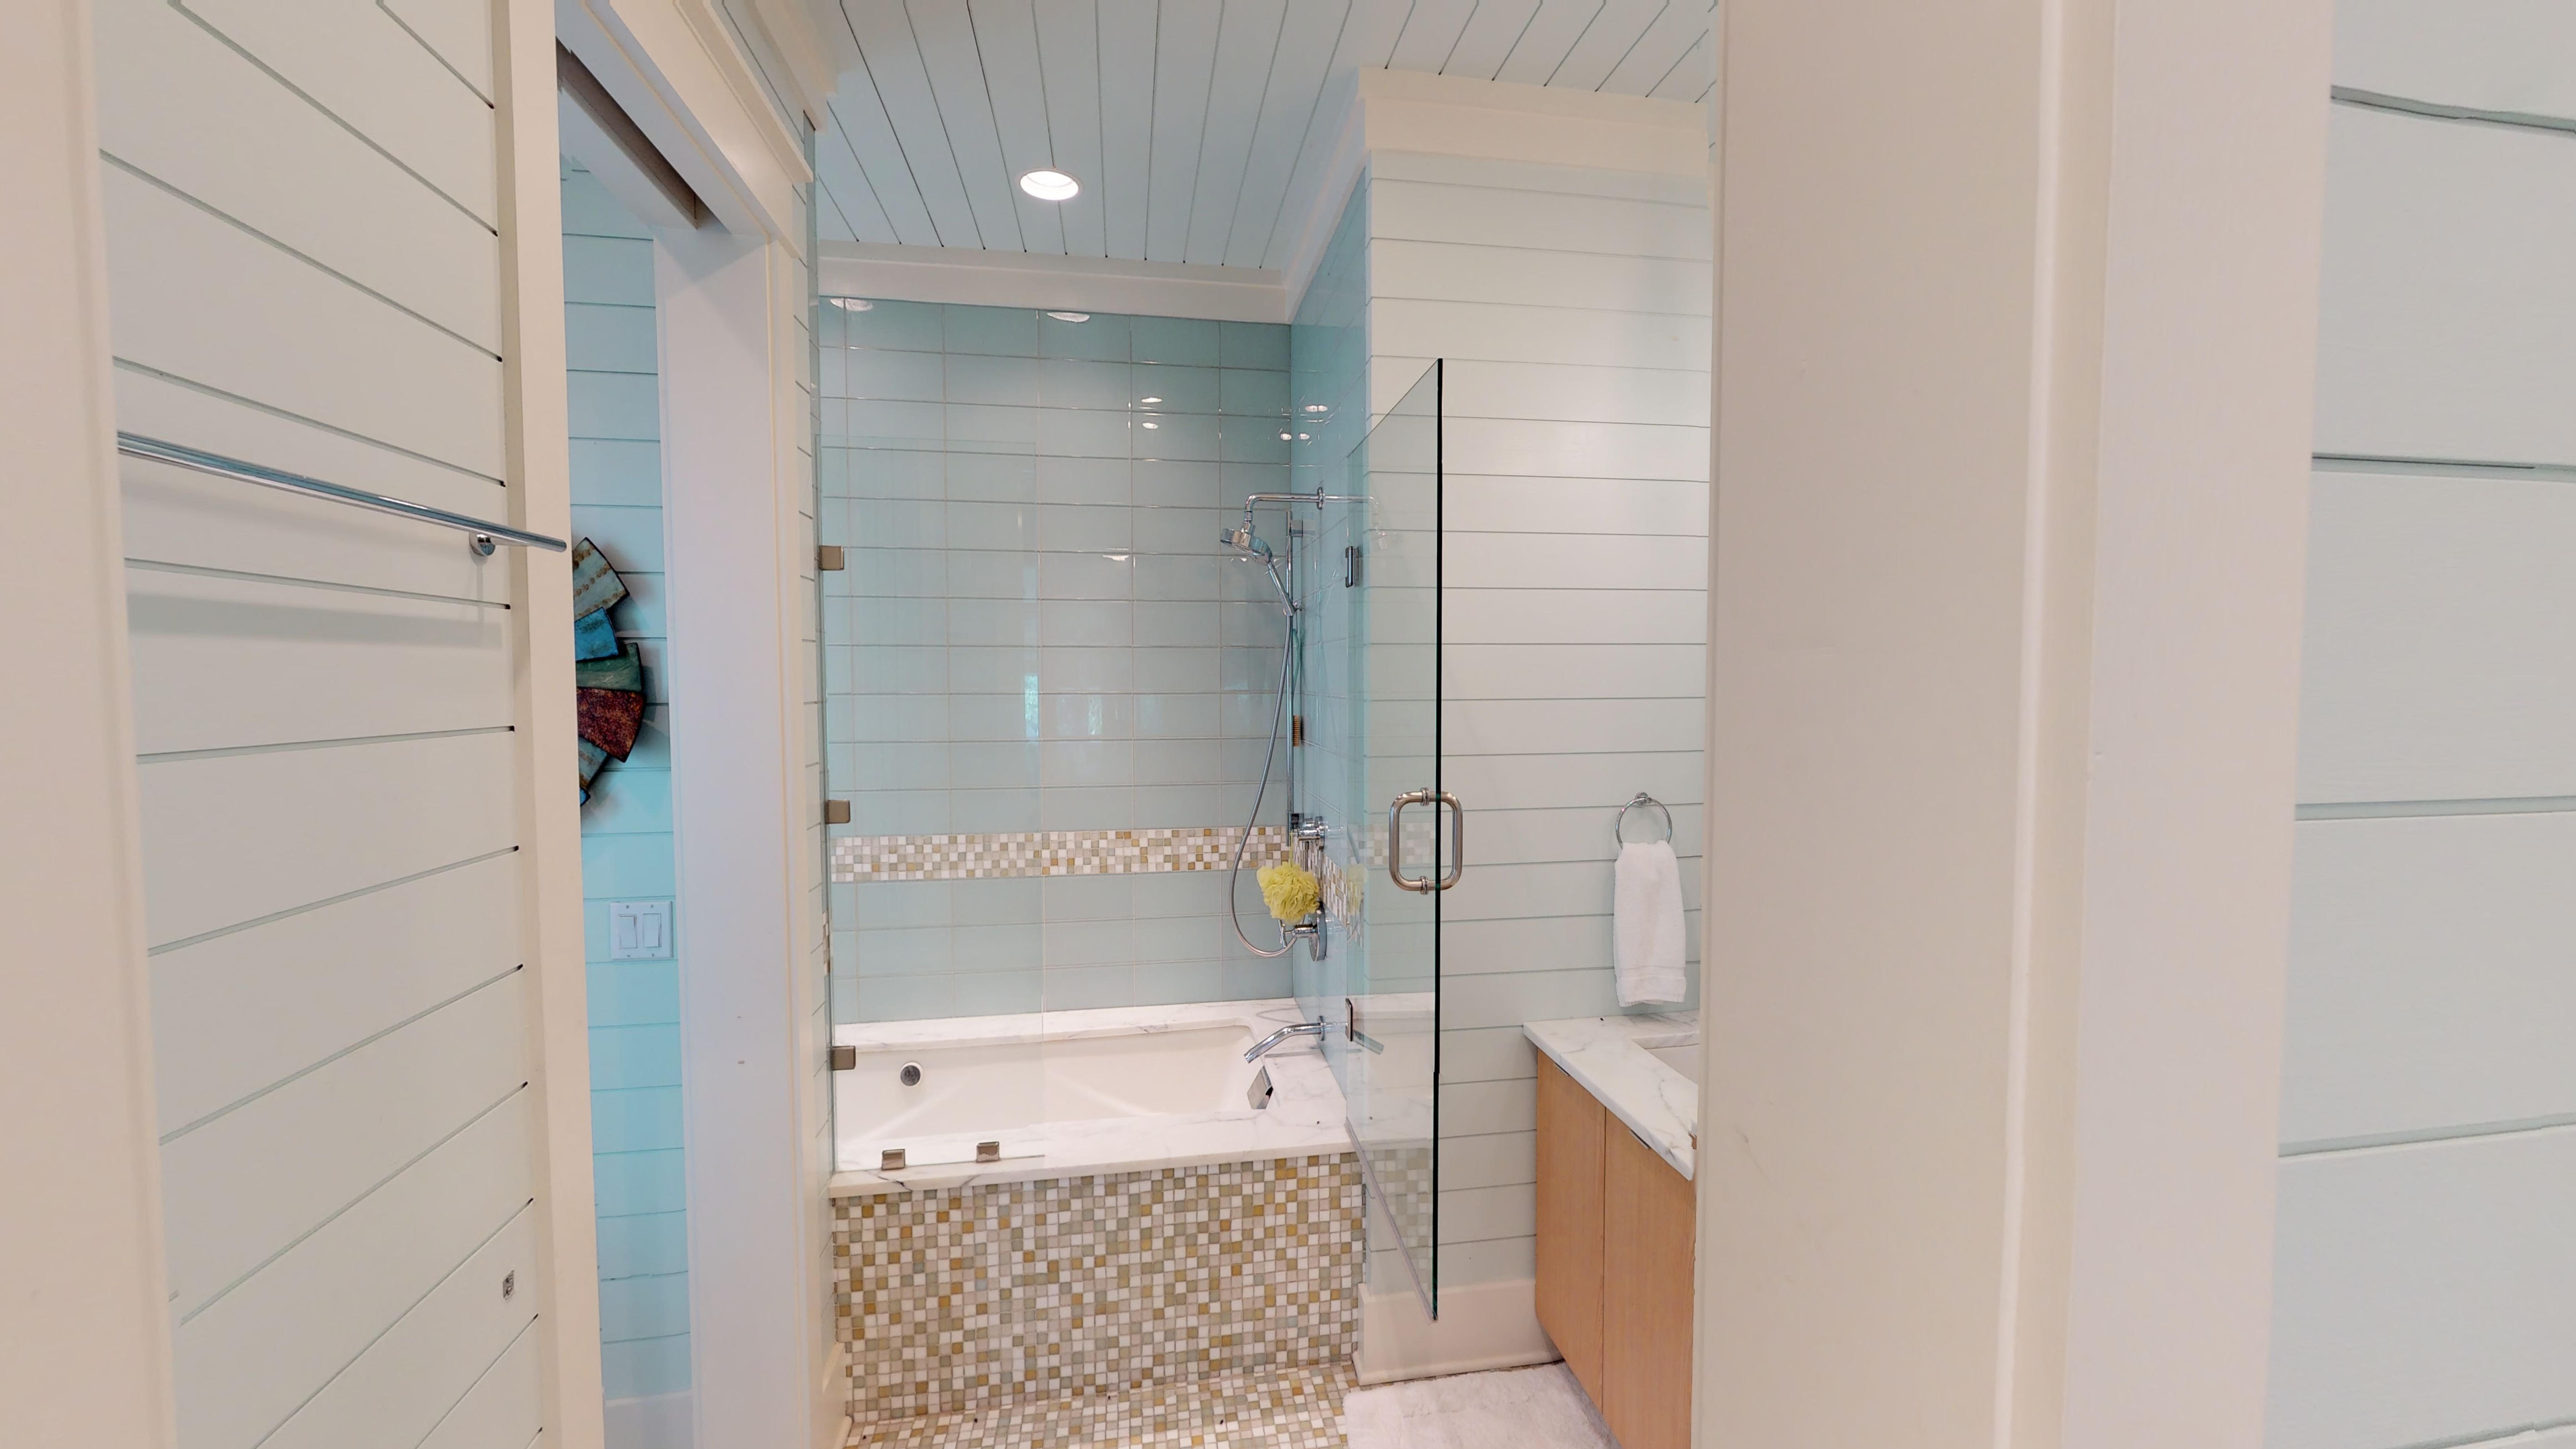 Gorgeous tiled bathroom with a tub/shower combo